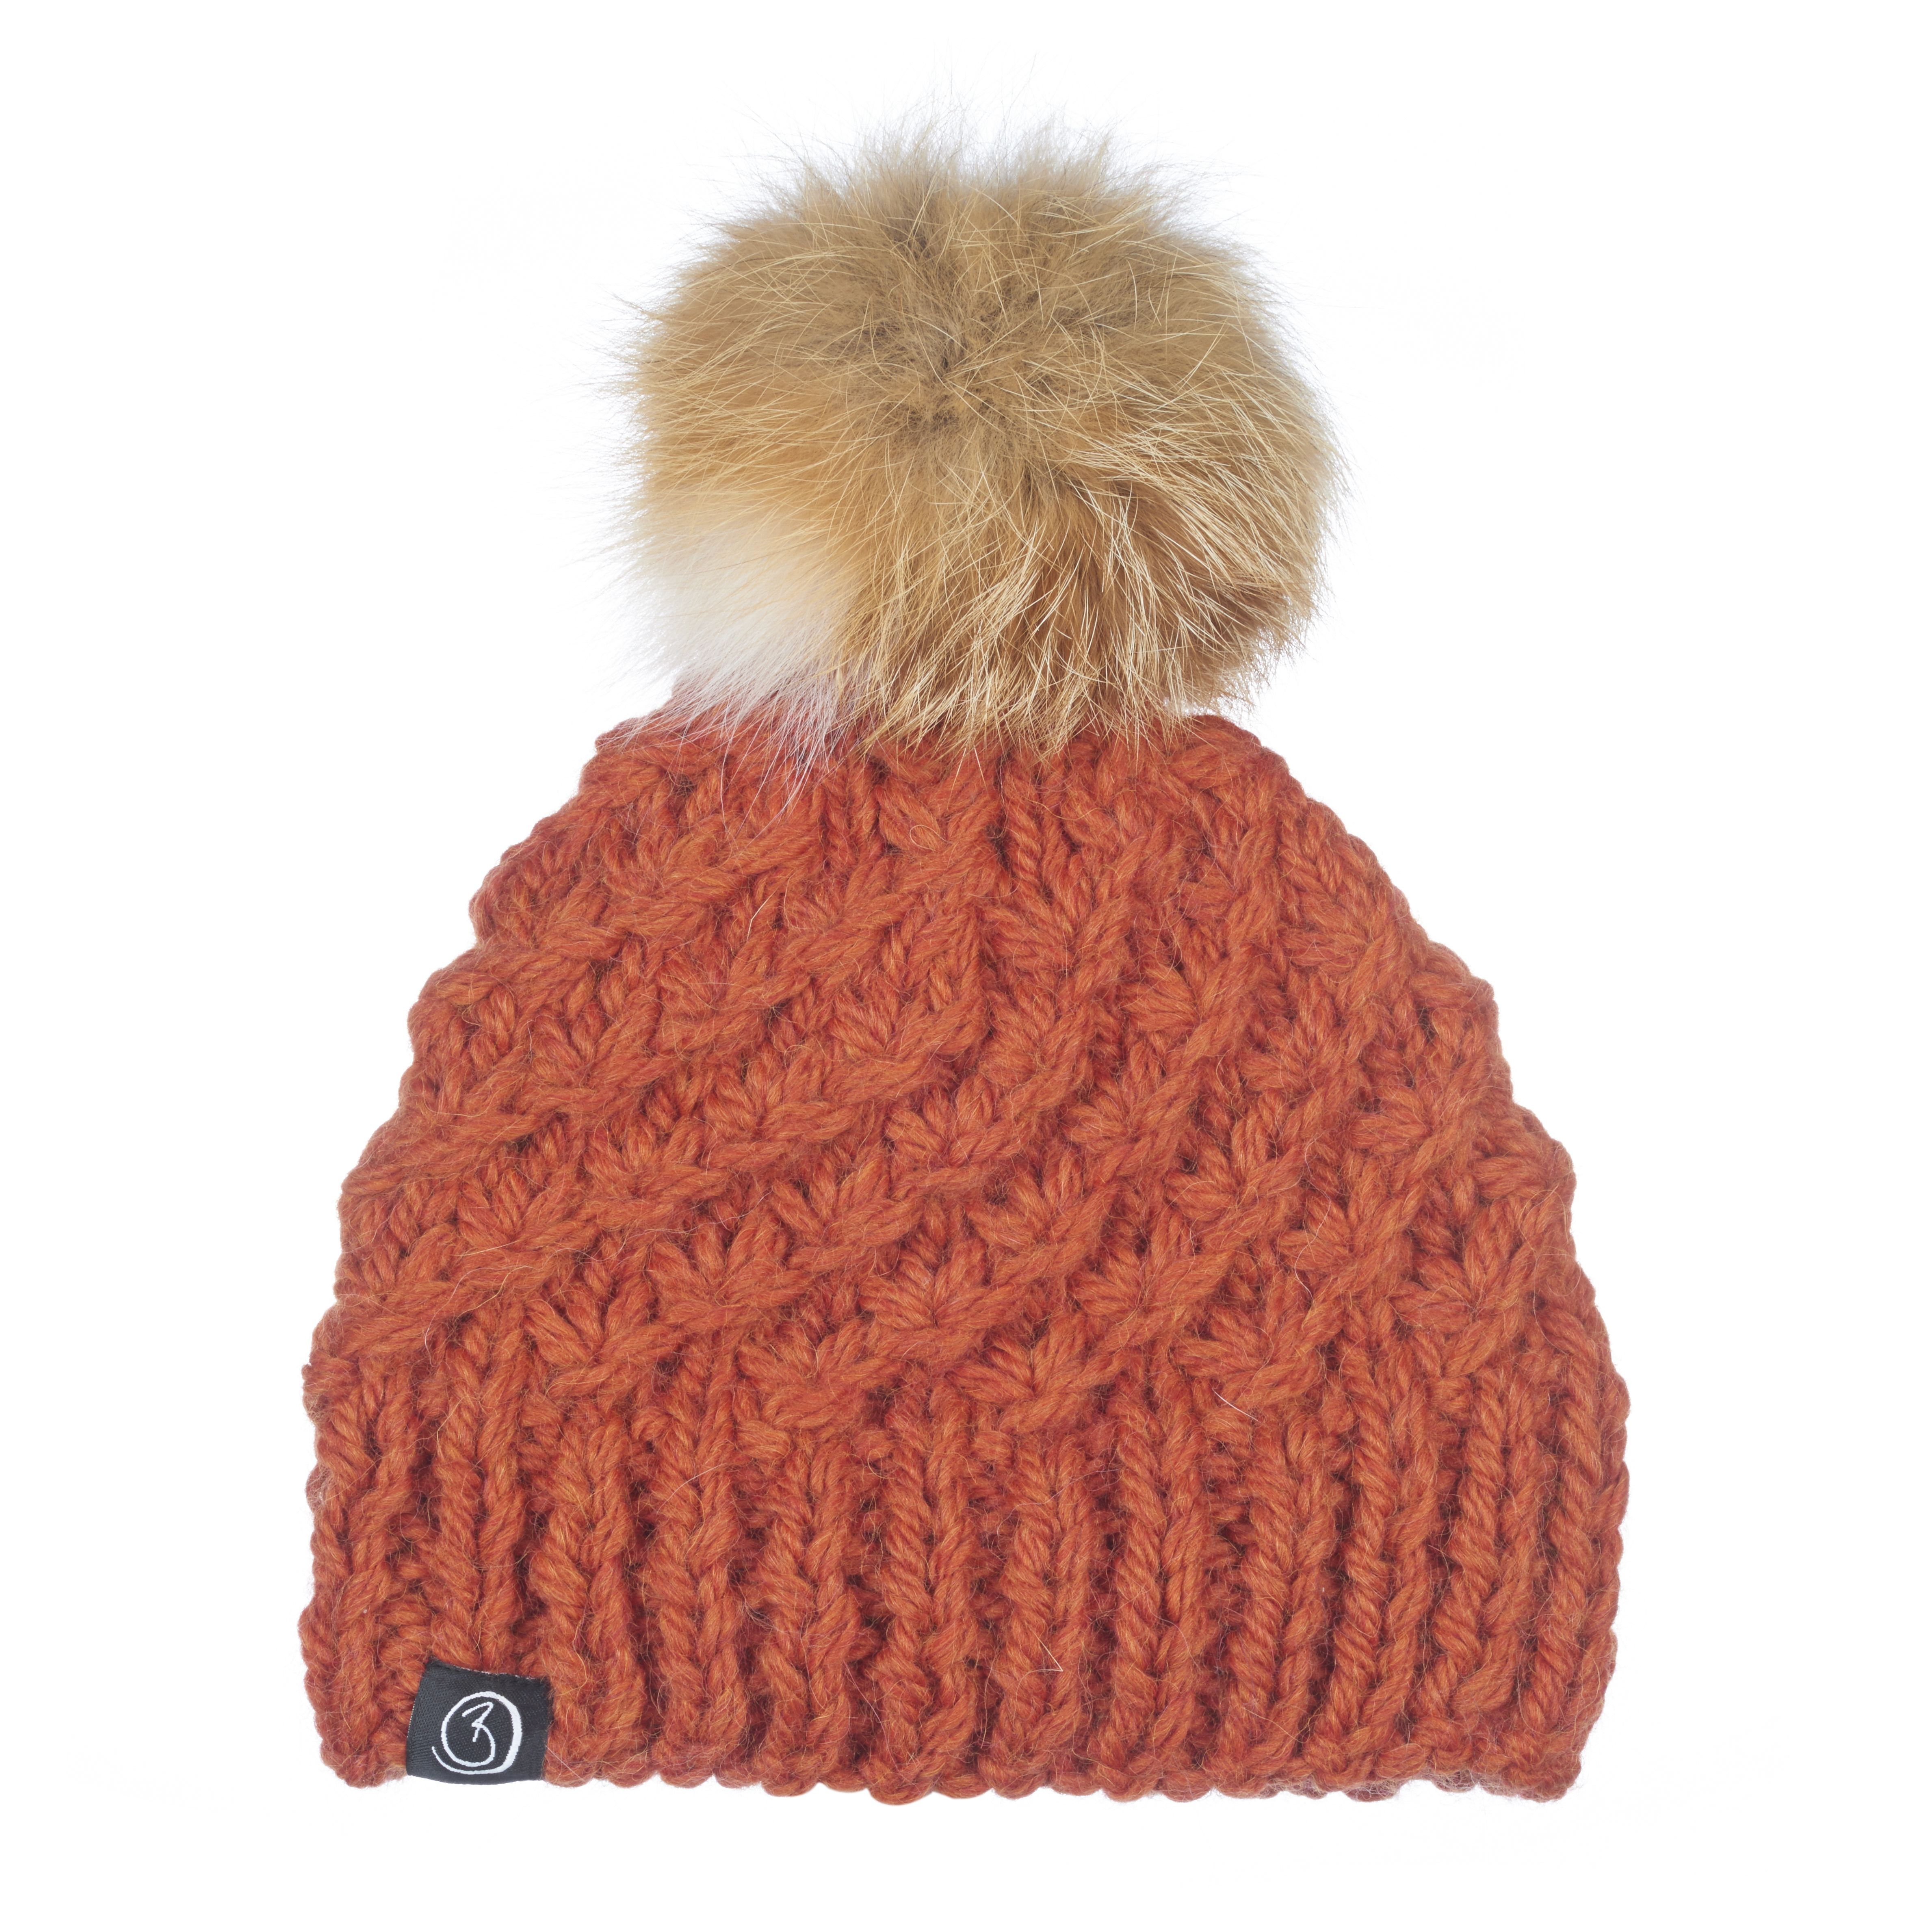 Burnt Orange super chunky hand knitted hat with a rabbit fur pom pom Rabbit  Fur 8399f29d0bb